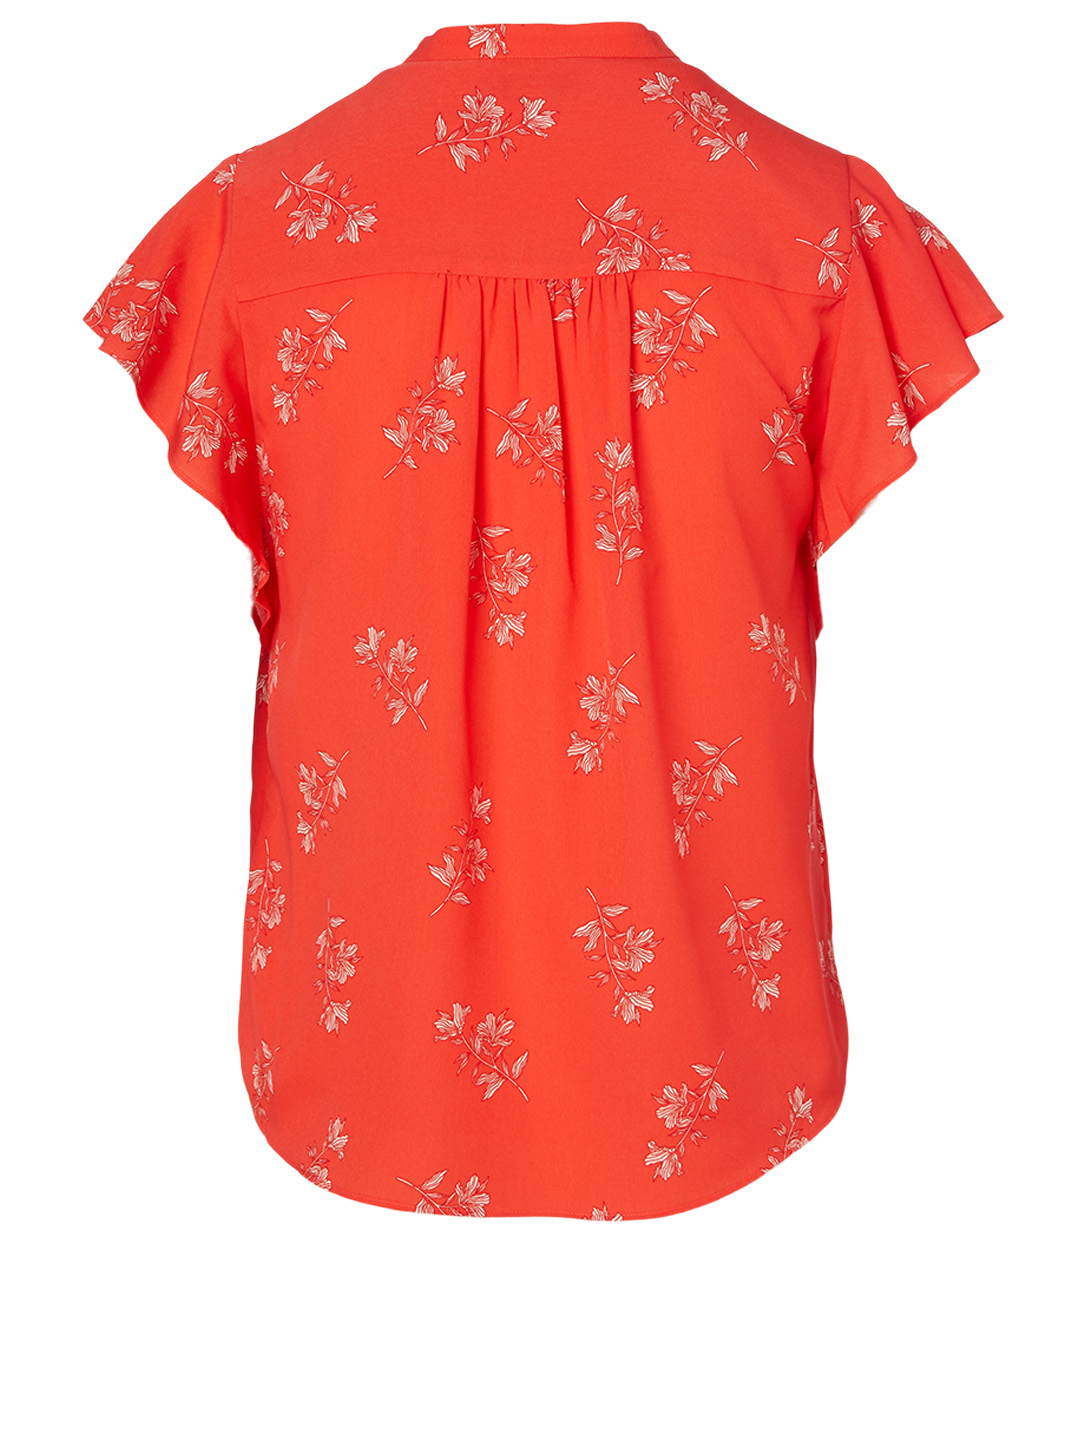 JOIE Marlina Top In Floral Print Women's Orange